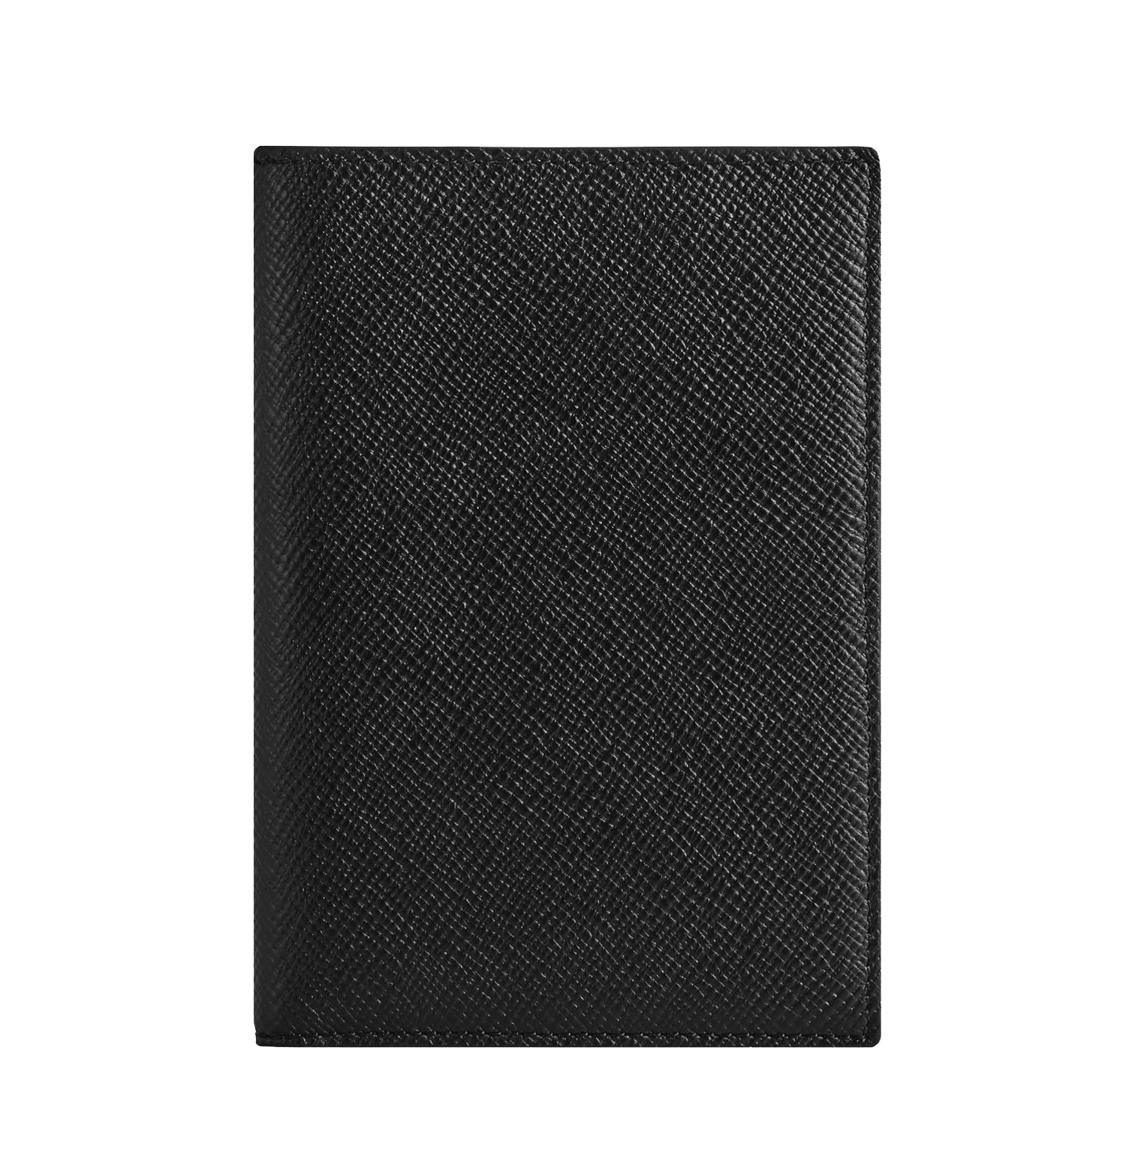 Smythson Panama Cross-Grain Leather Passport Cover